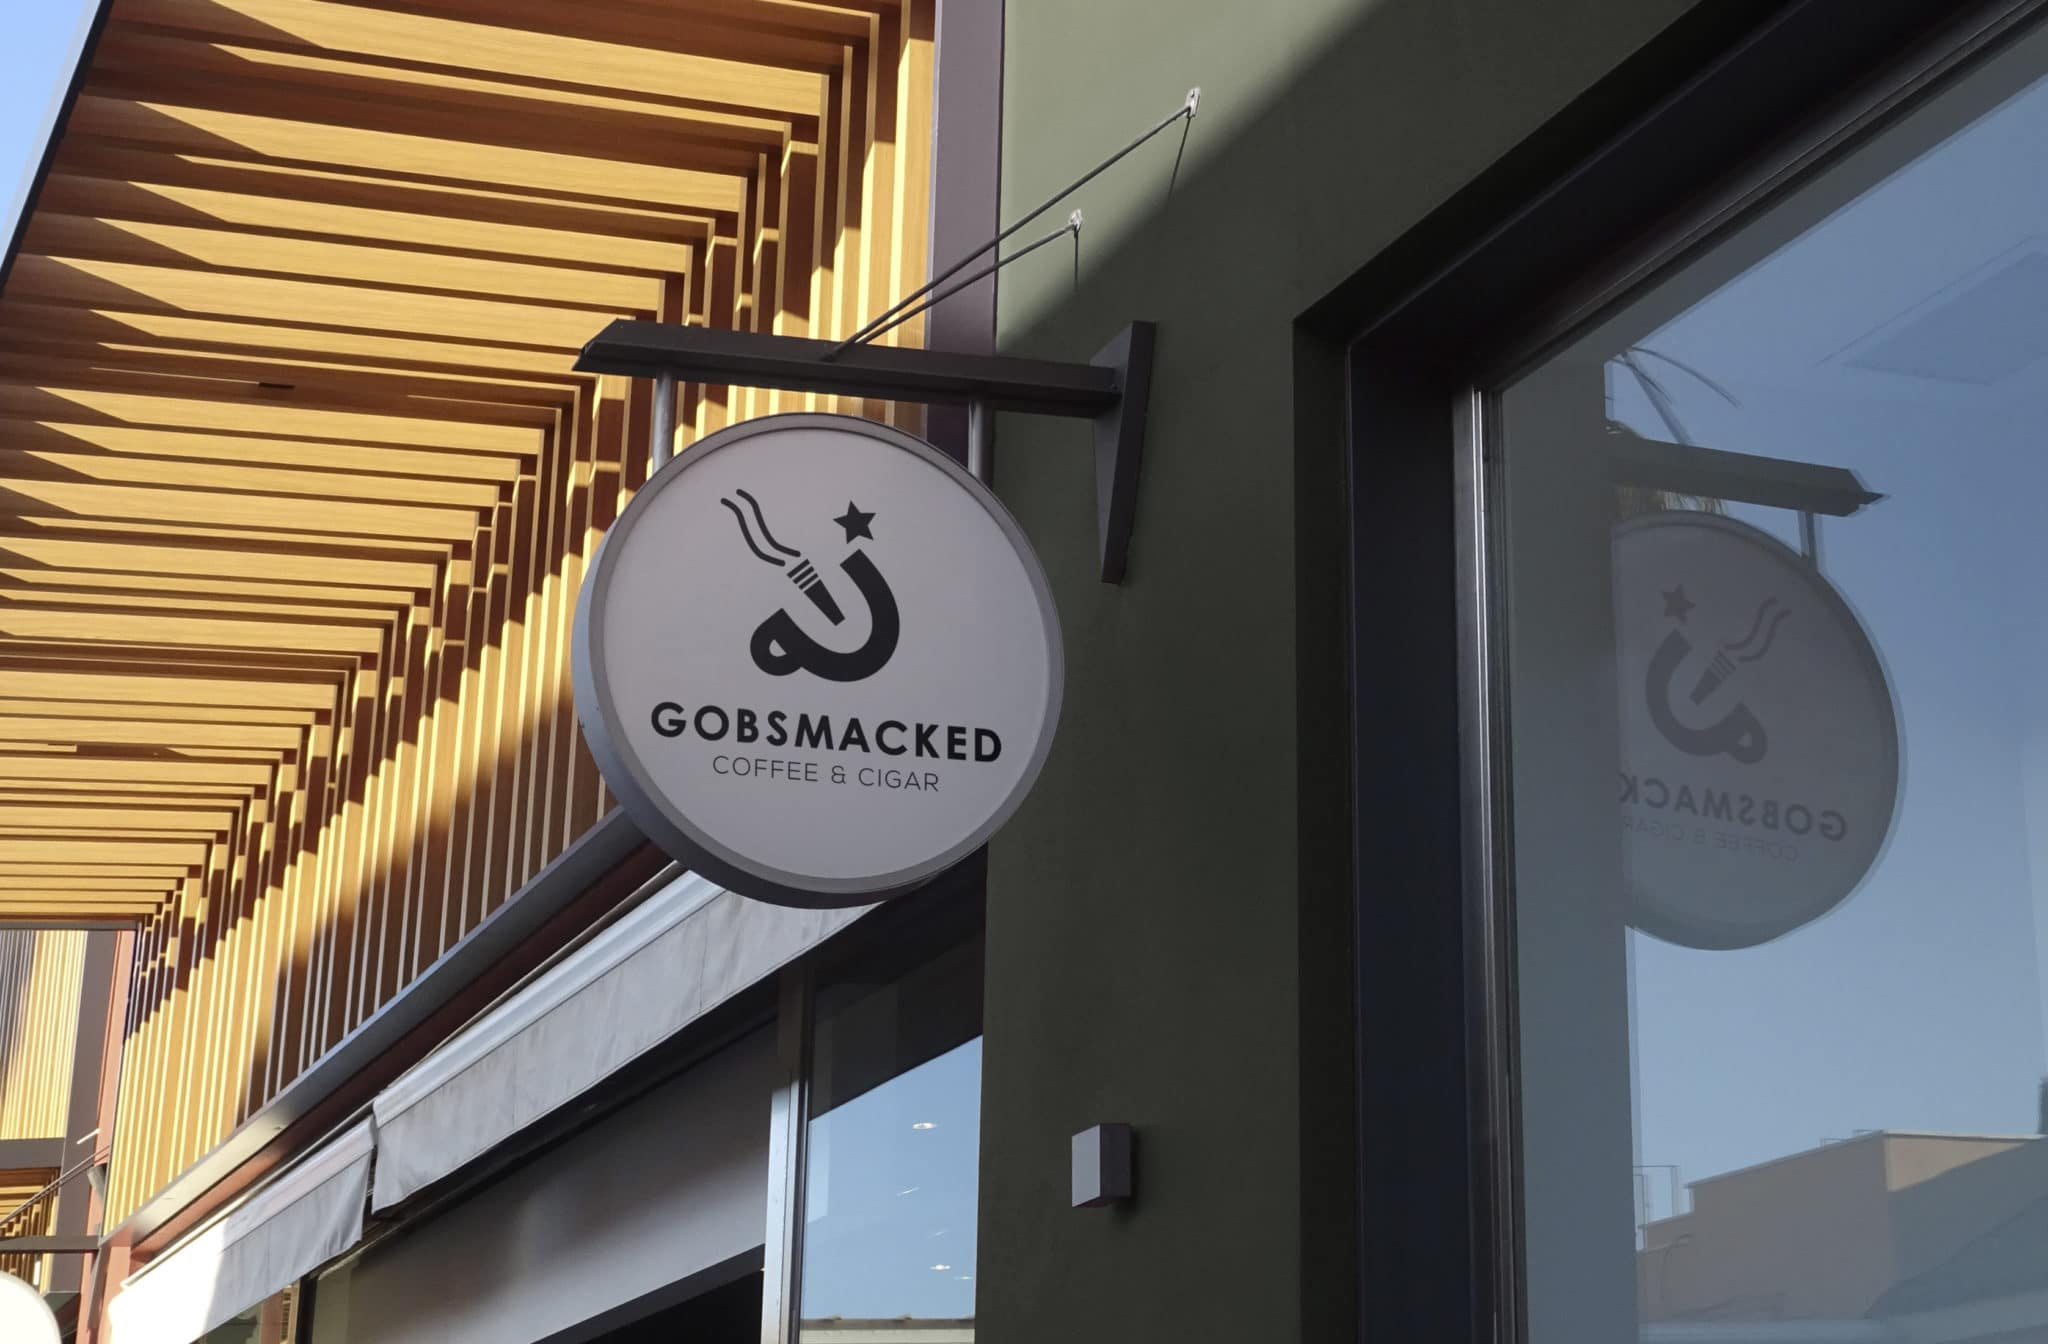 Gobsmacked Coffee & Cigar Exterior Signage